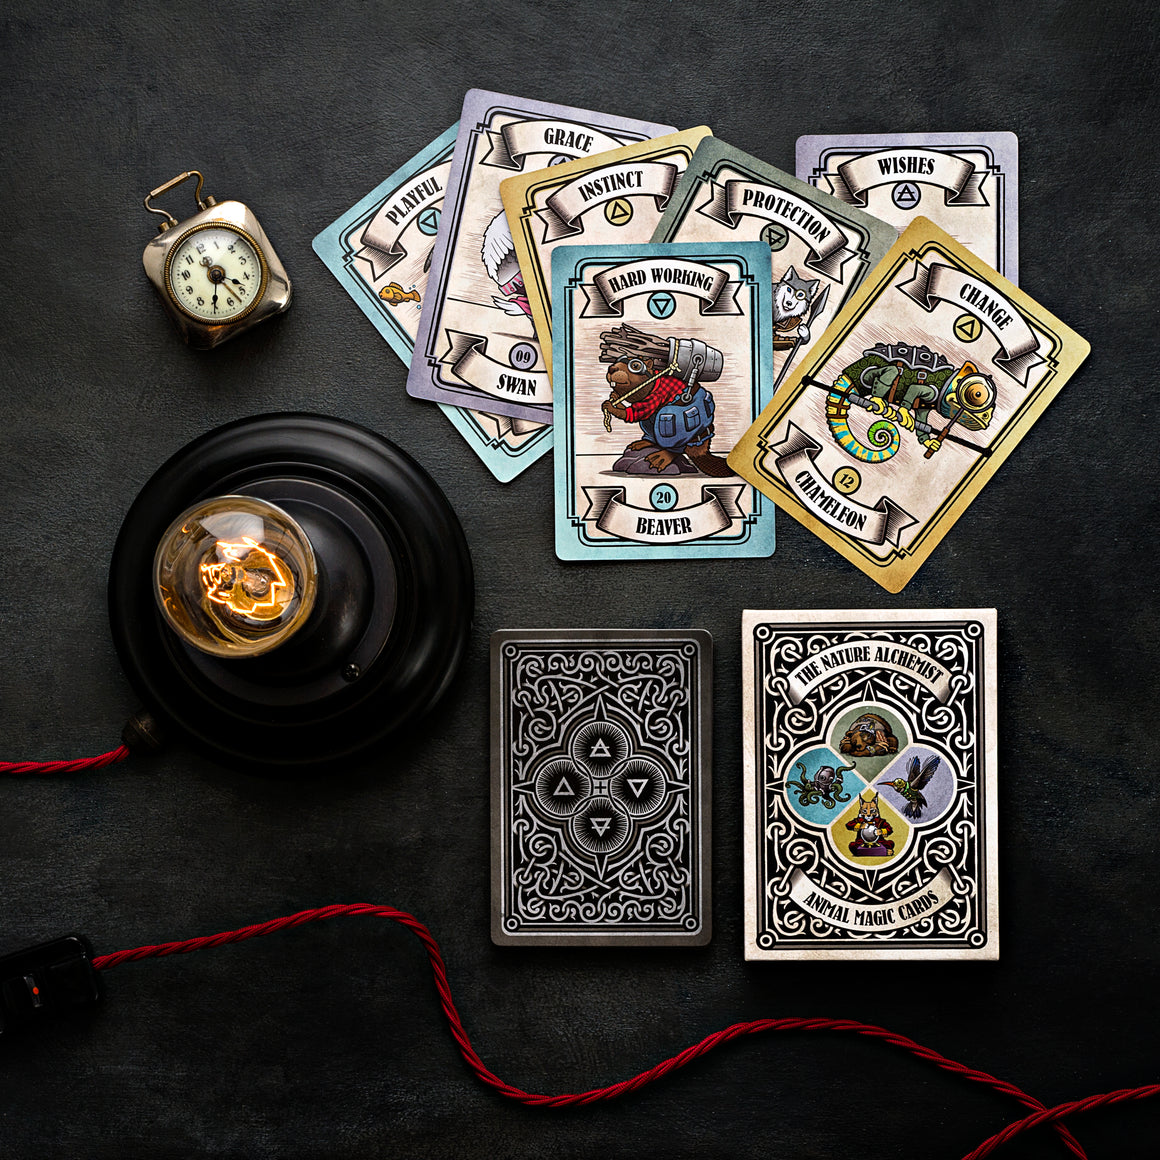 Steampunk 'Animal Magic' Guidance Cards